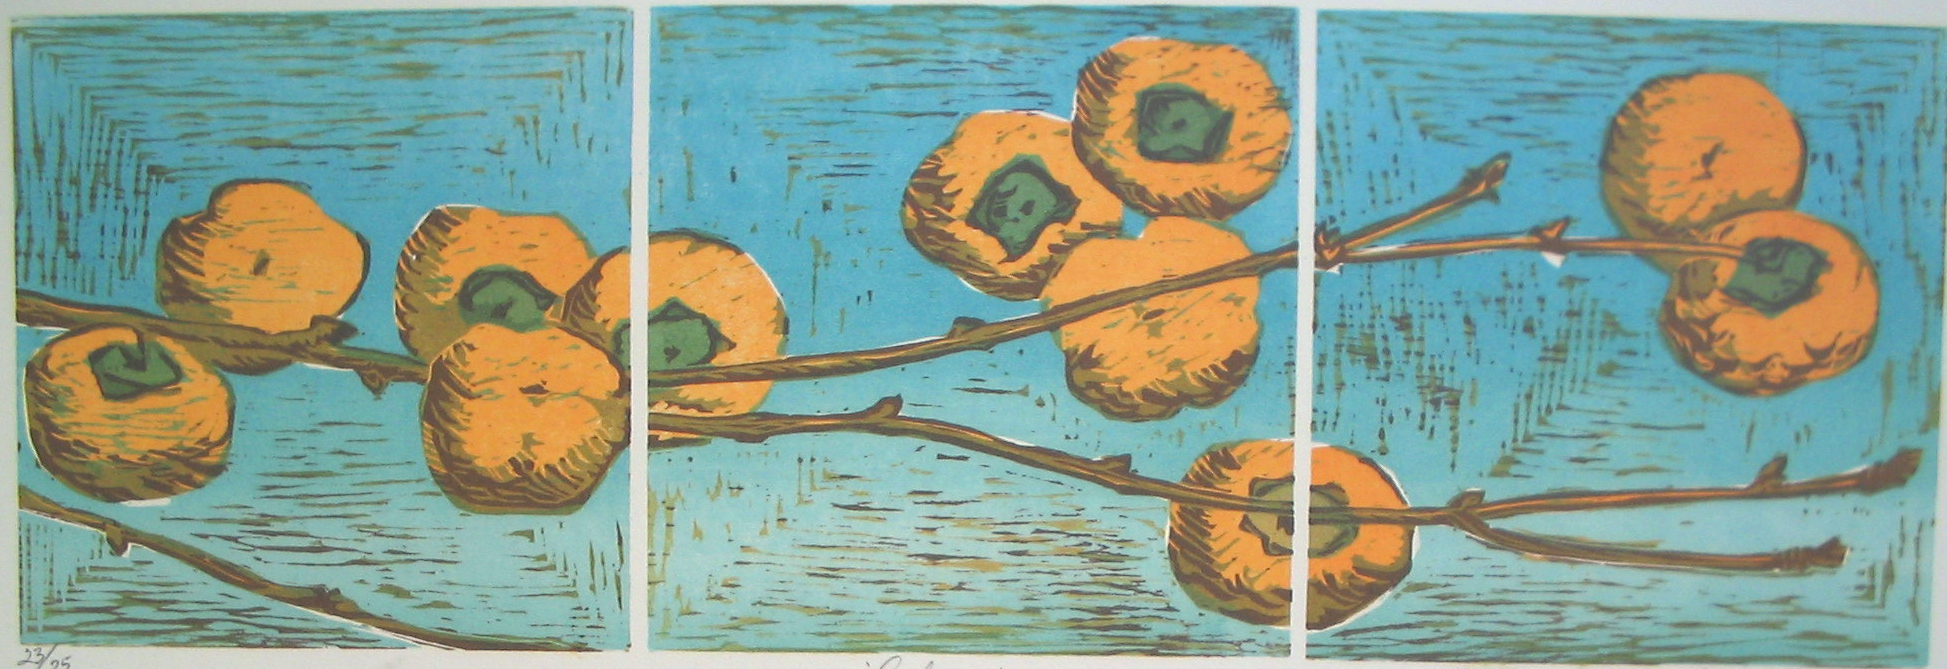 Renee Ugrin, Autumn, woodcut